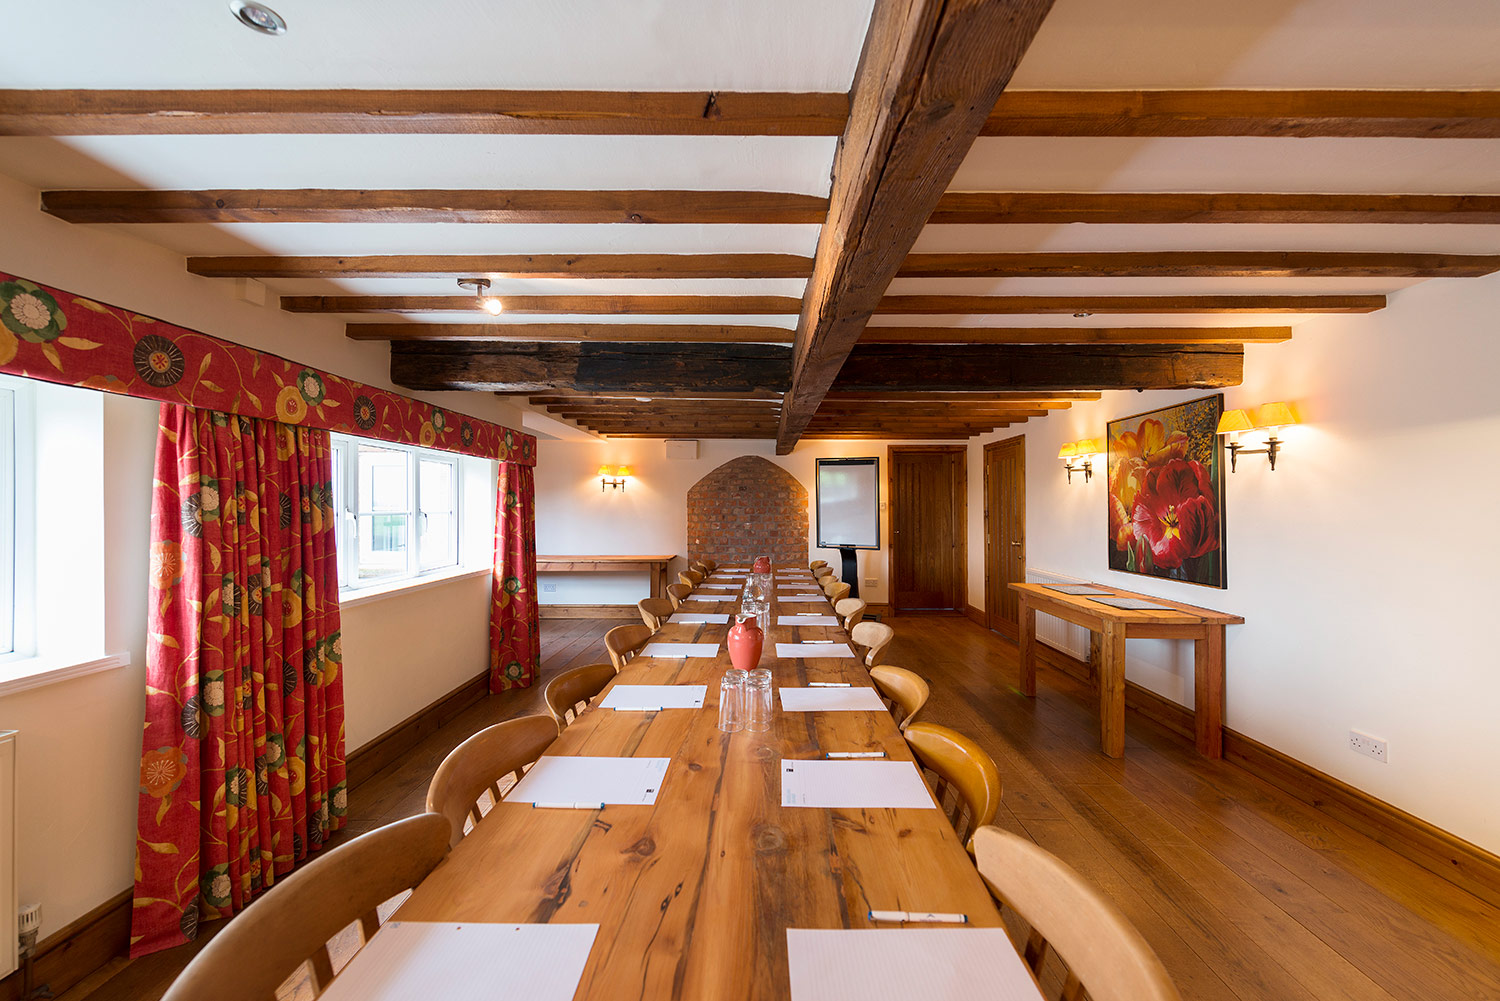 Business meeting location in central UK | Upper Rectory Farm Cottages